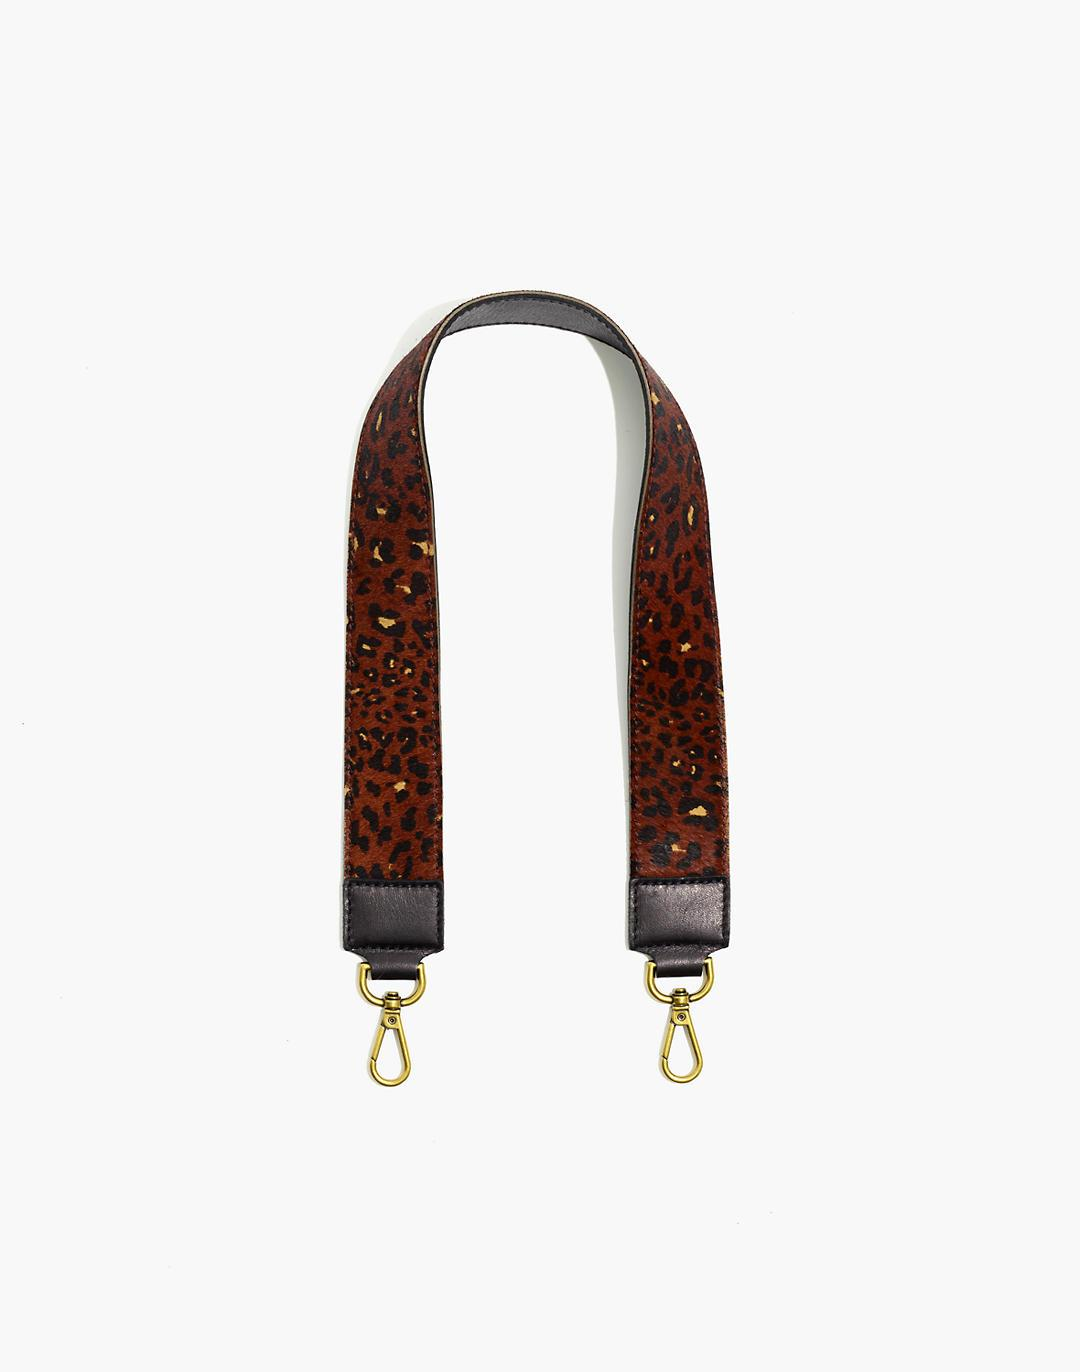 The Shoulder Bag Strap: Painted Leopard Calf Hair Edition